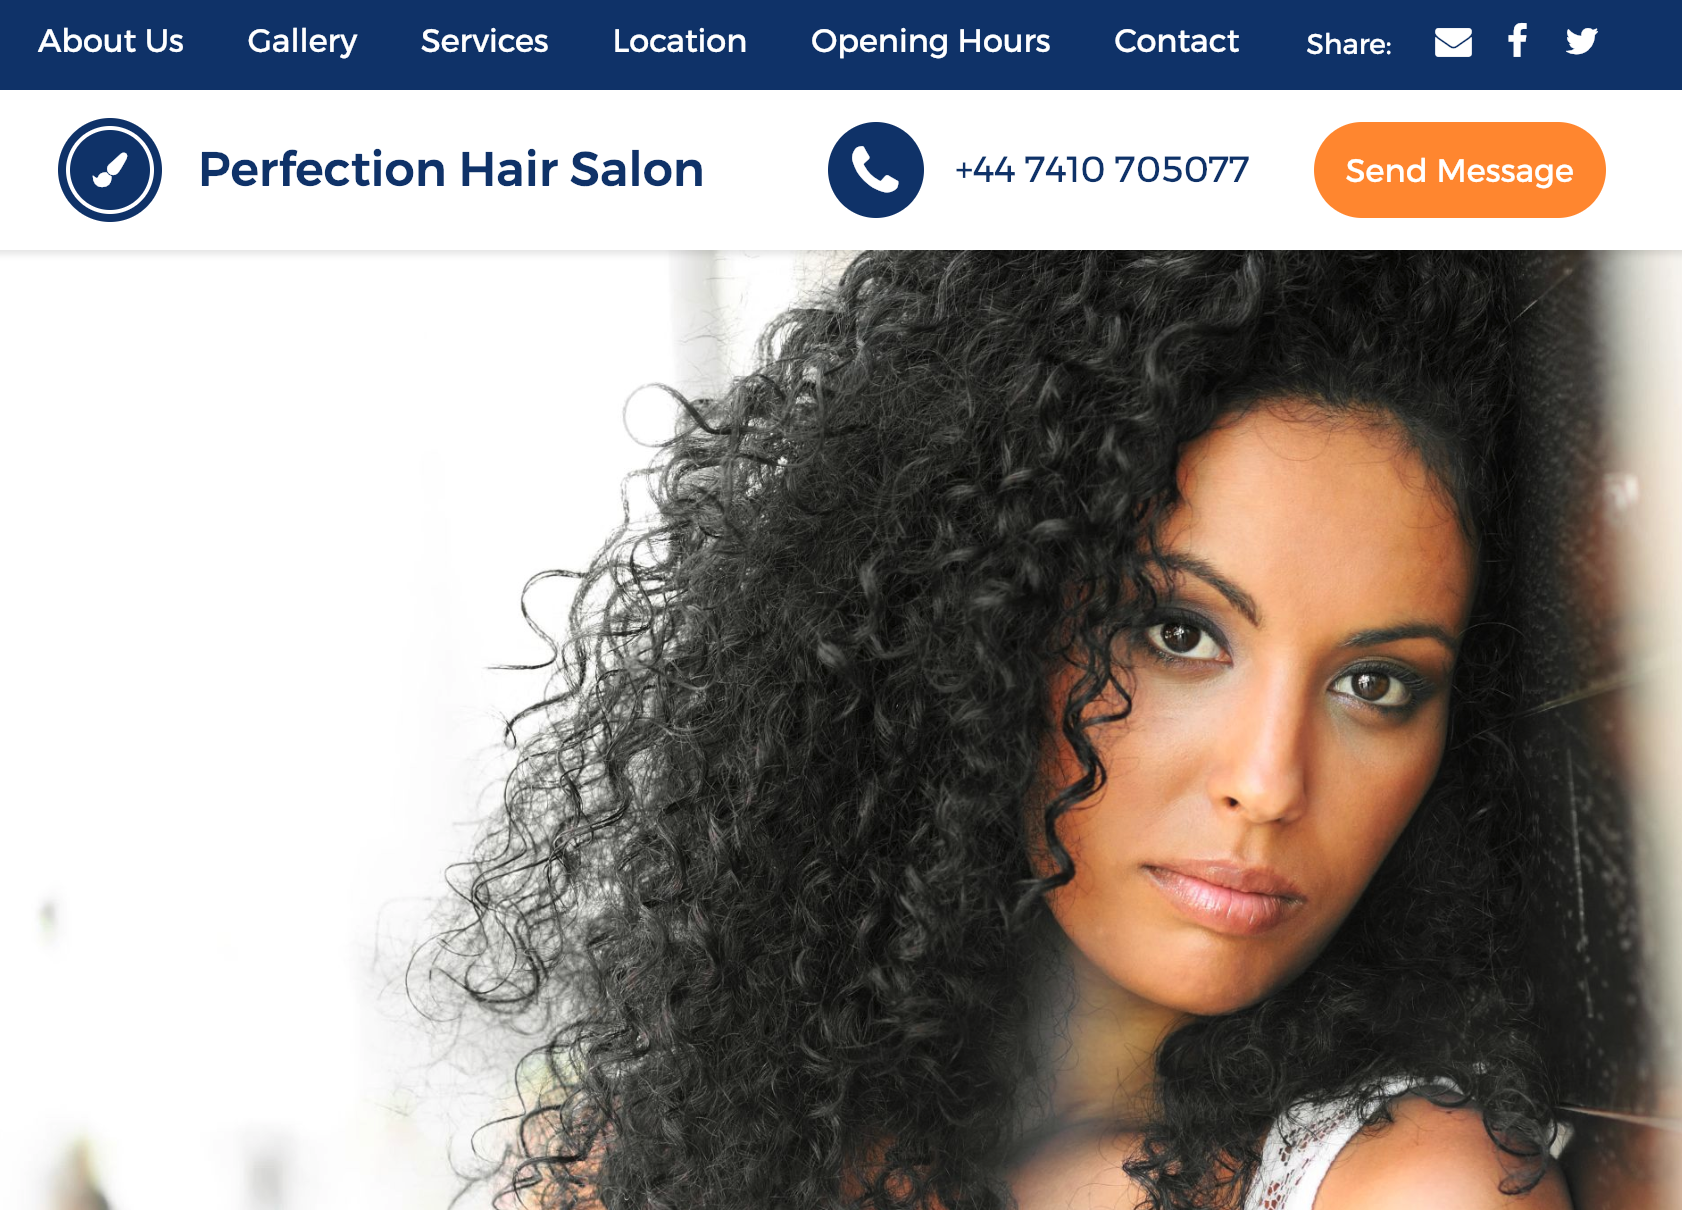 Perfection Hair Salon